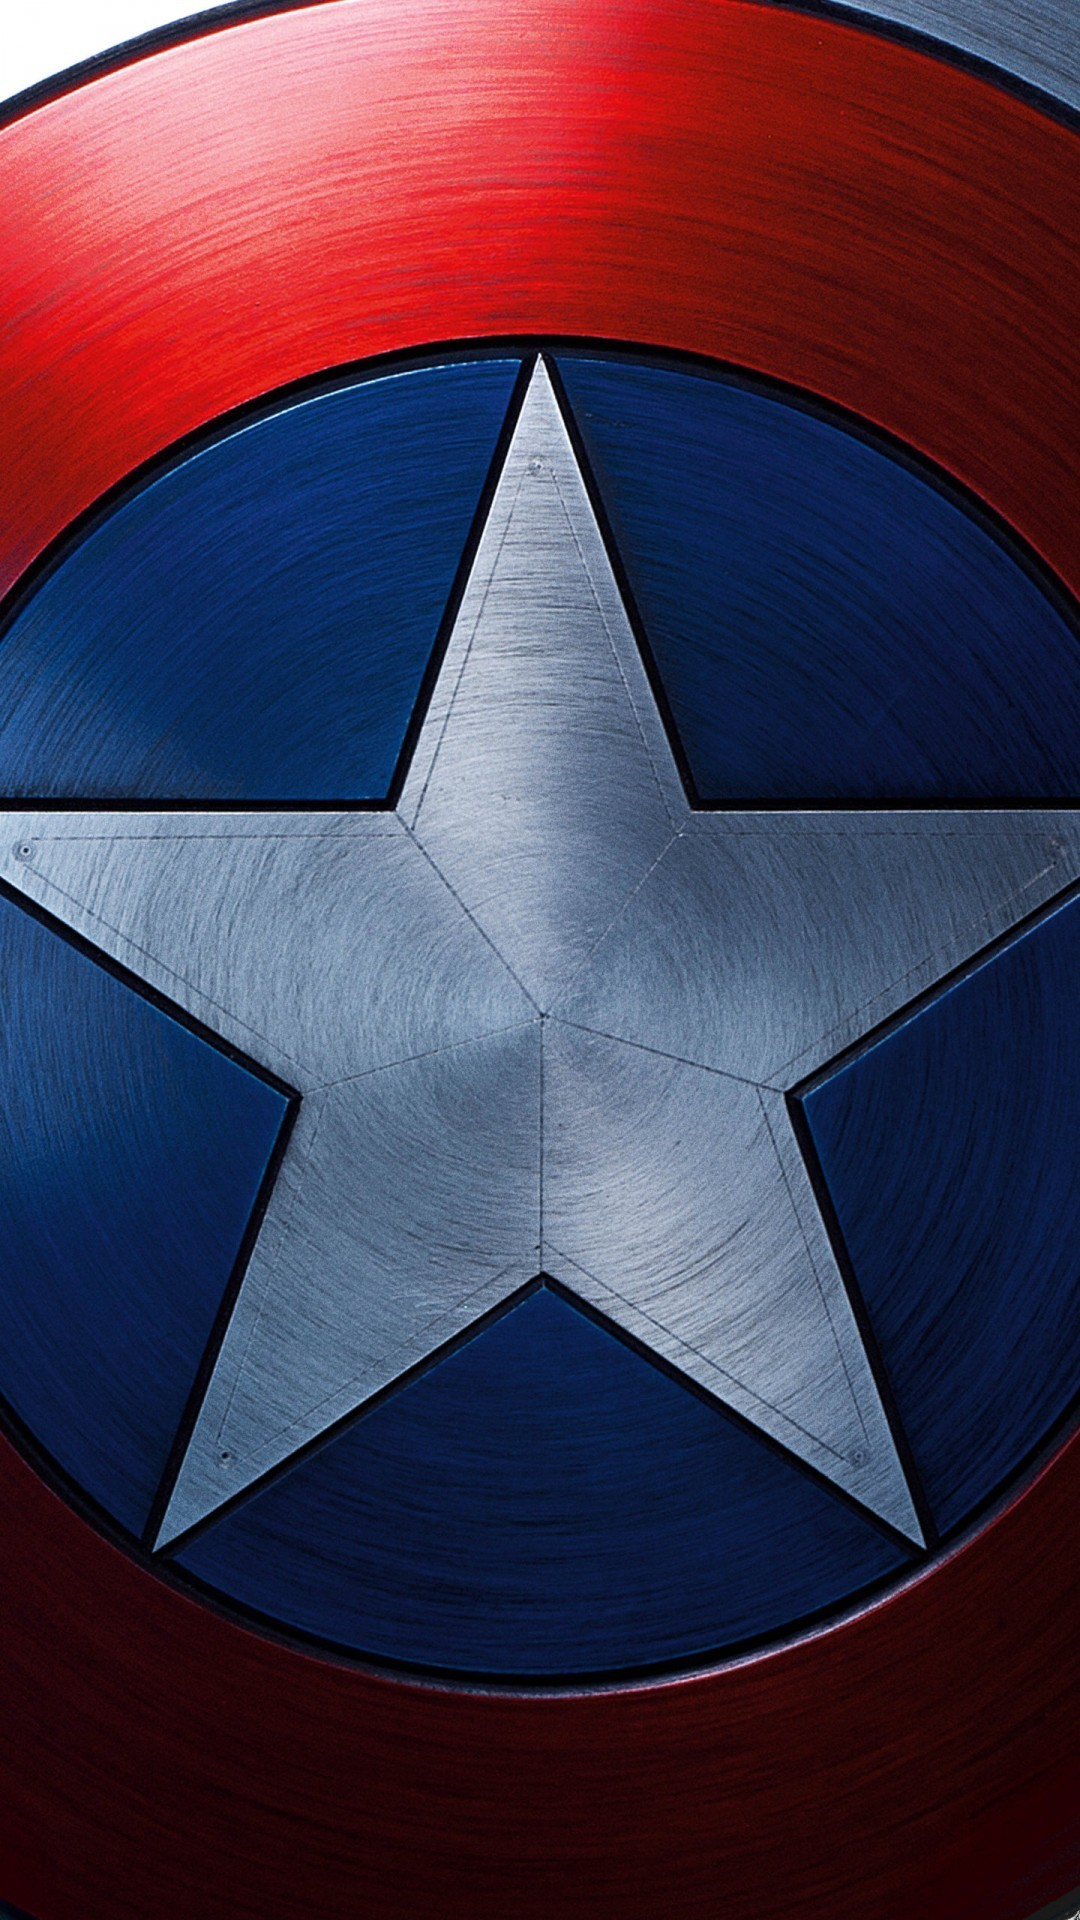 Captain America Shield Iphone Wallpaper 75 Images